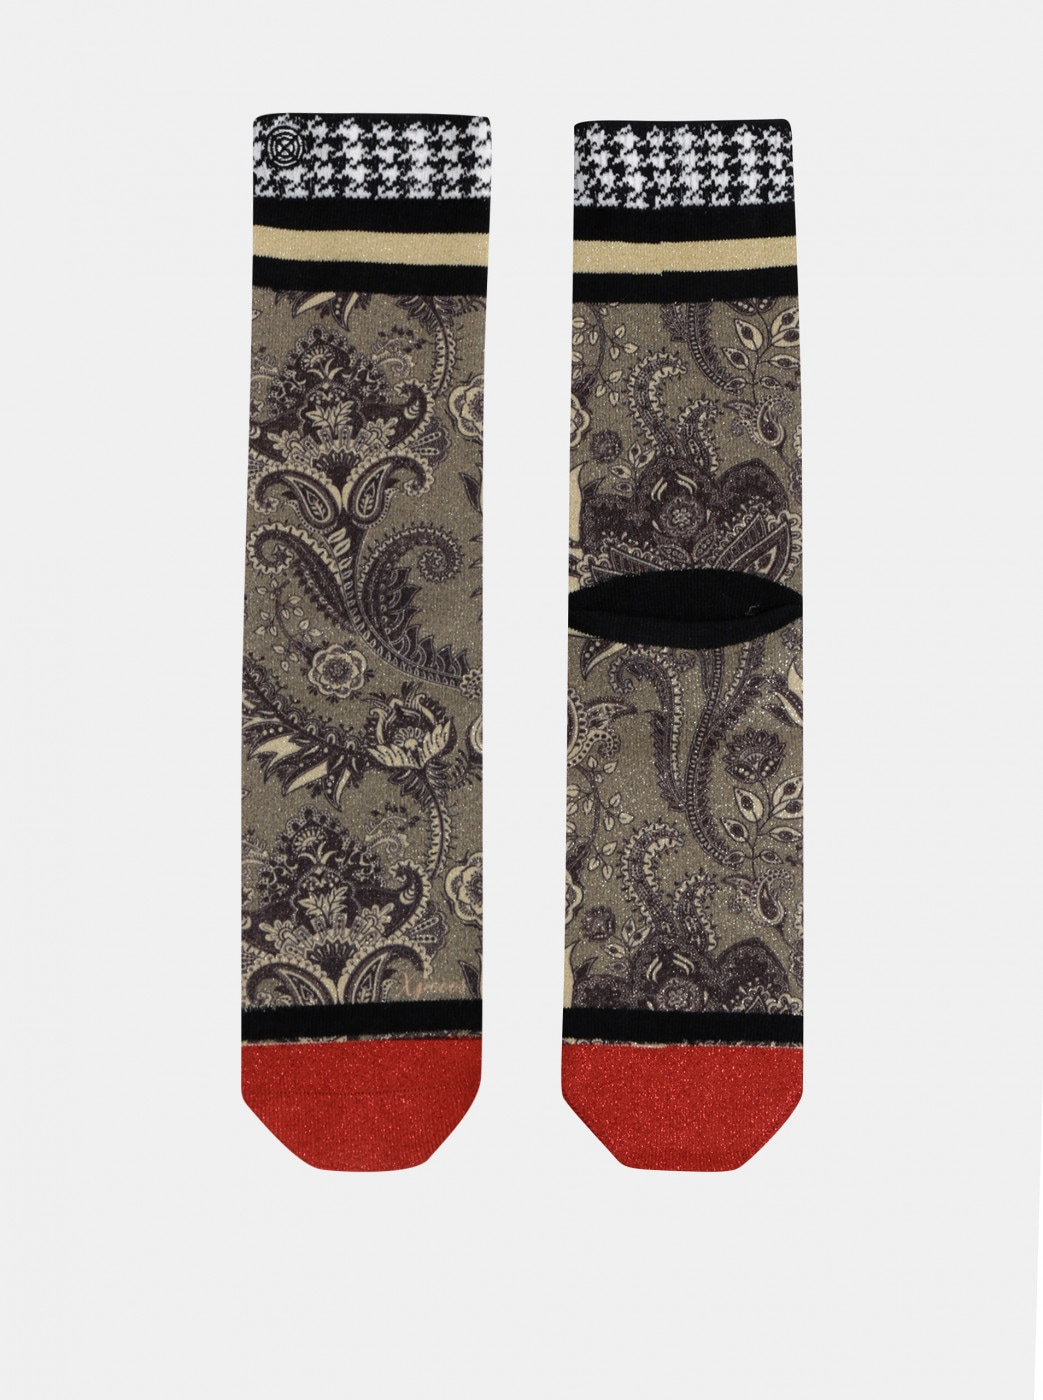 Floral women's socks in gold color XPOOOS